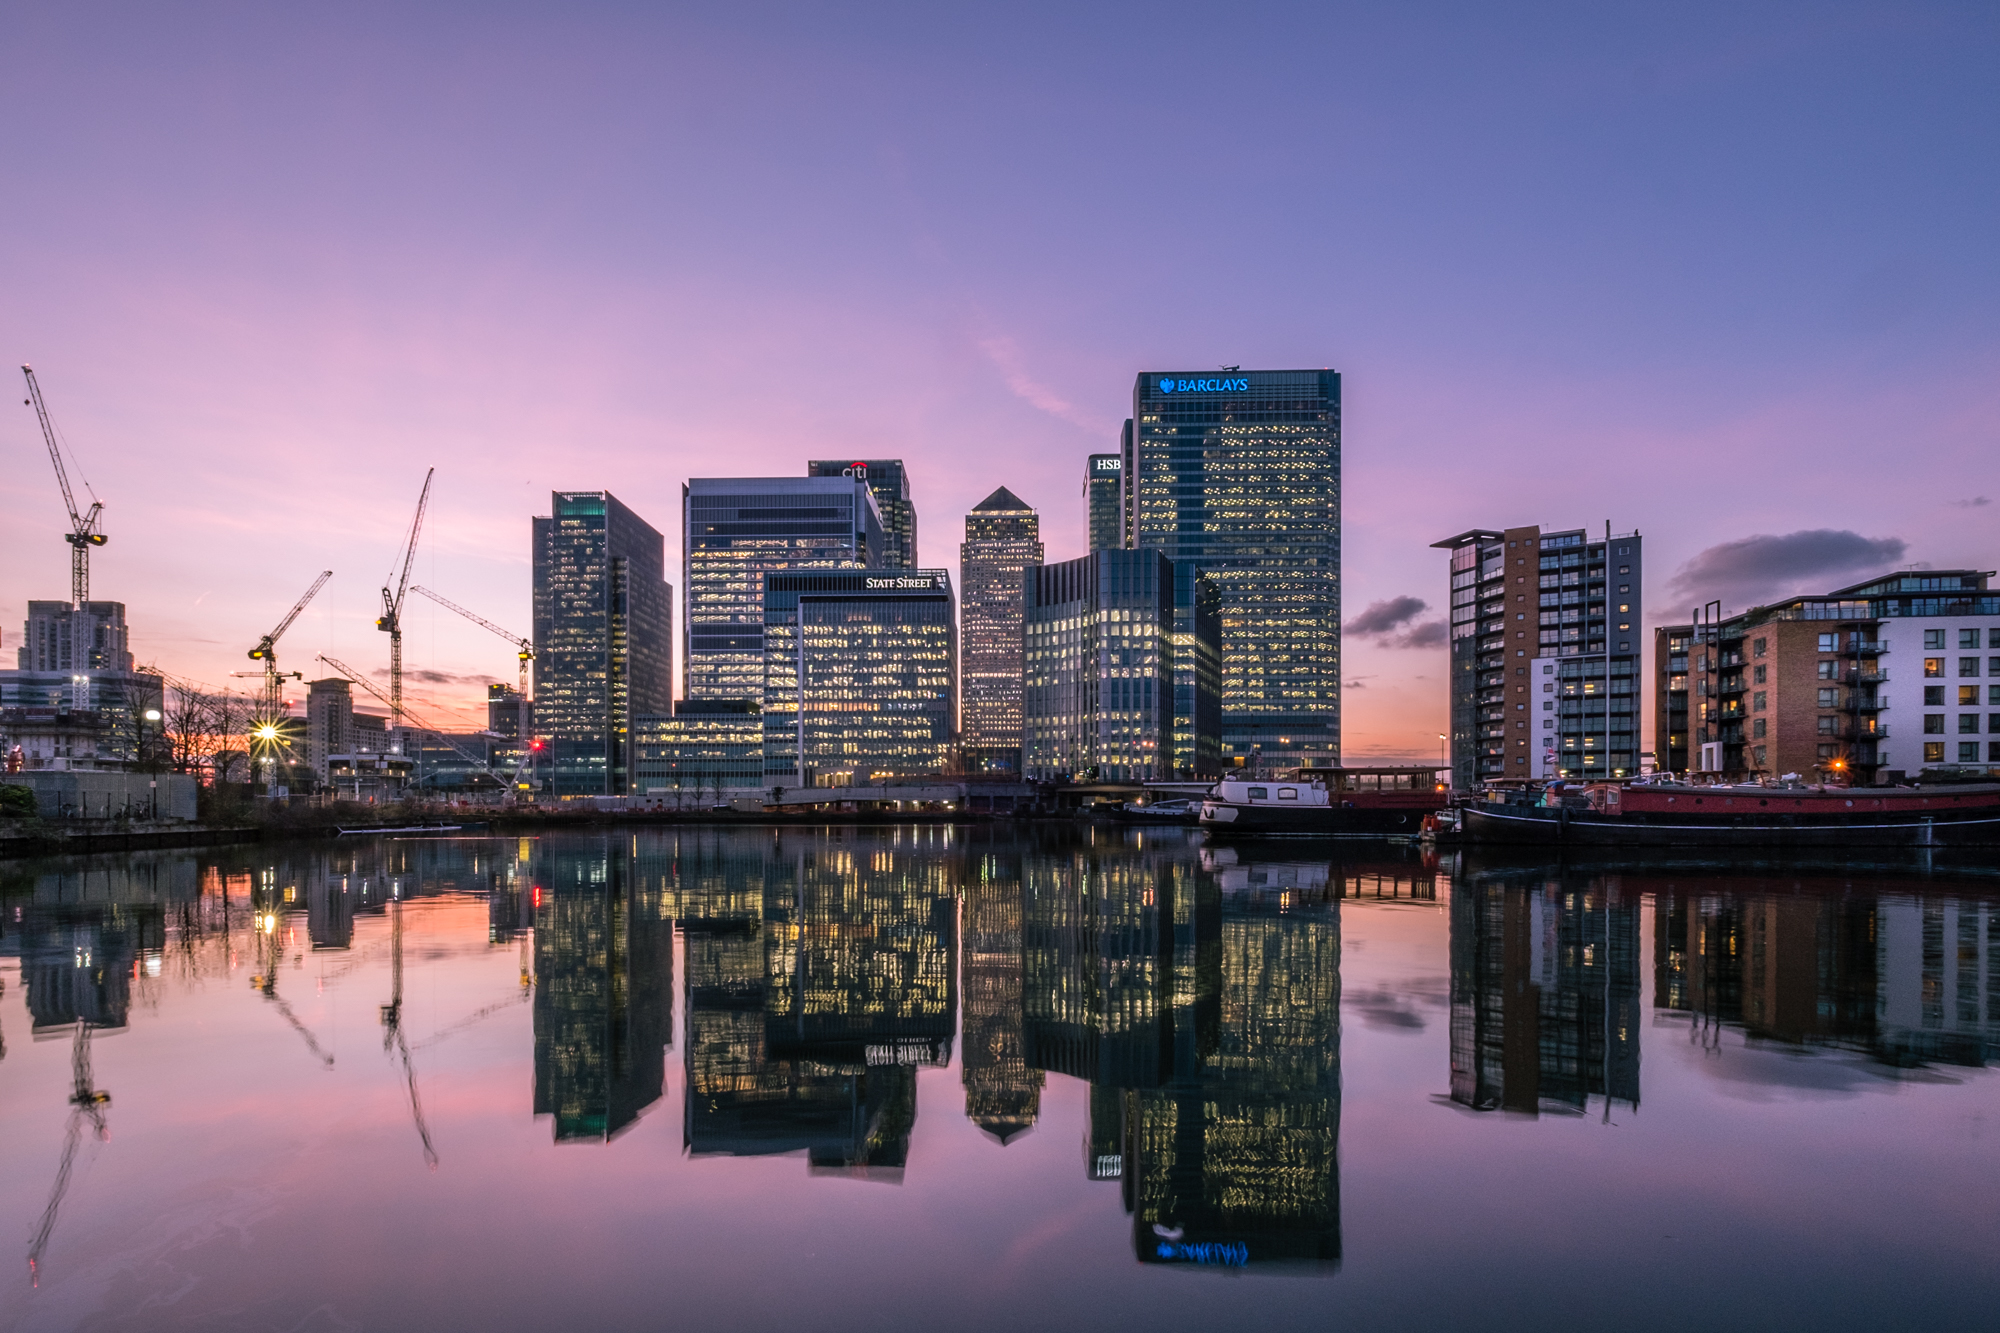 A photo of Canary Wharf in the blue hour taken by Trevor Sherwin